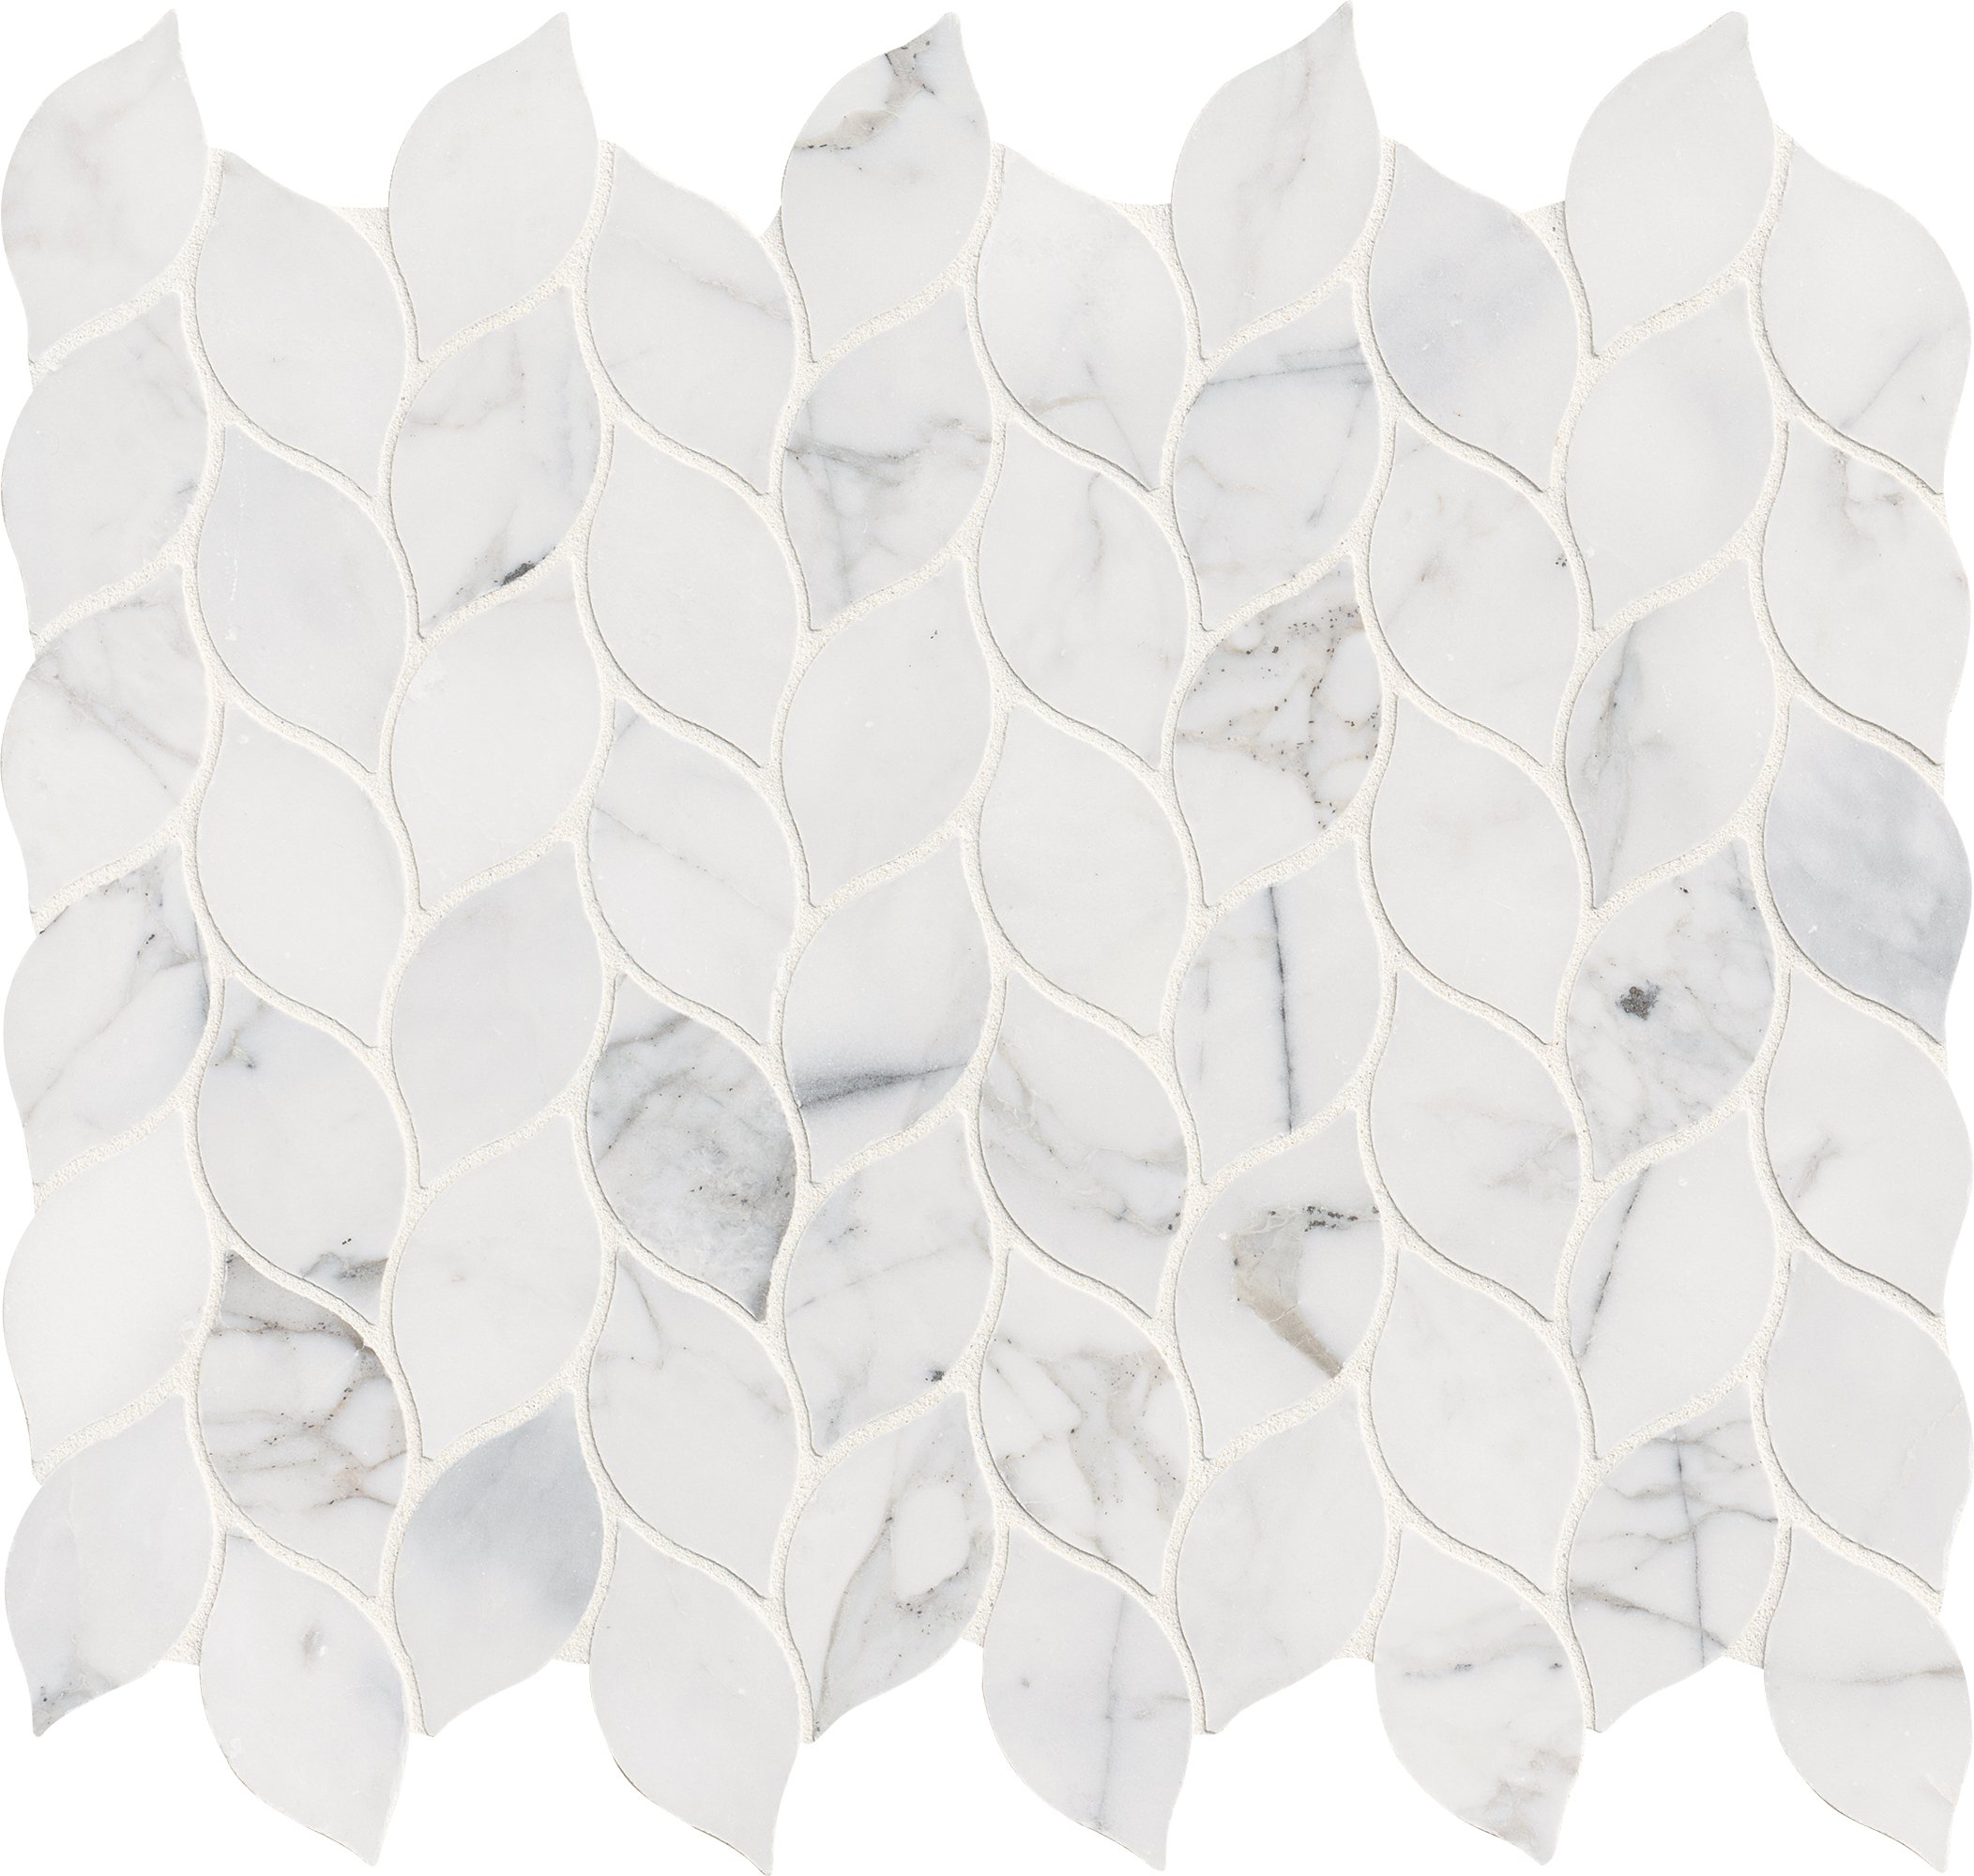 M S International SMOT-CALCRE-2X4H Mesh-Mounted Mosaic Tile Calcutta Cressa 11.81'' x 12'' x 10 mm Honed Marble 9.8 sq. ft./Case, White, 10 Piece by MS International